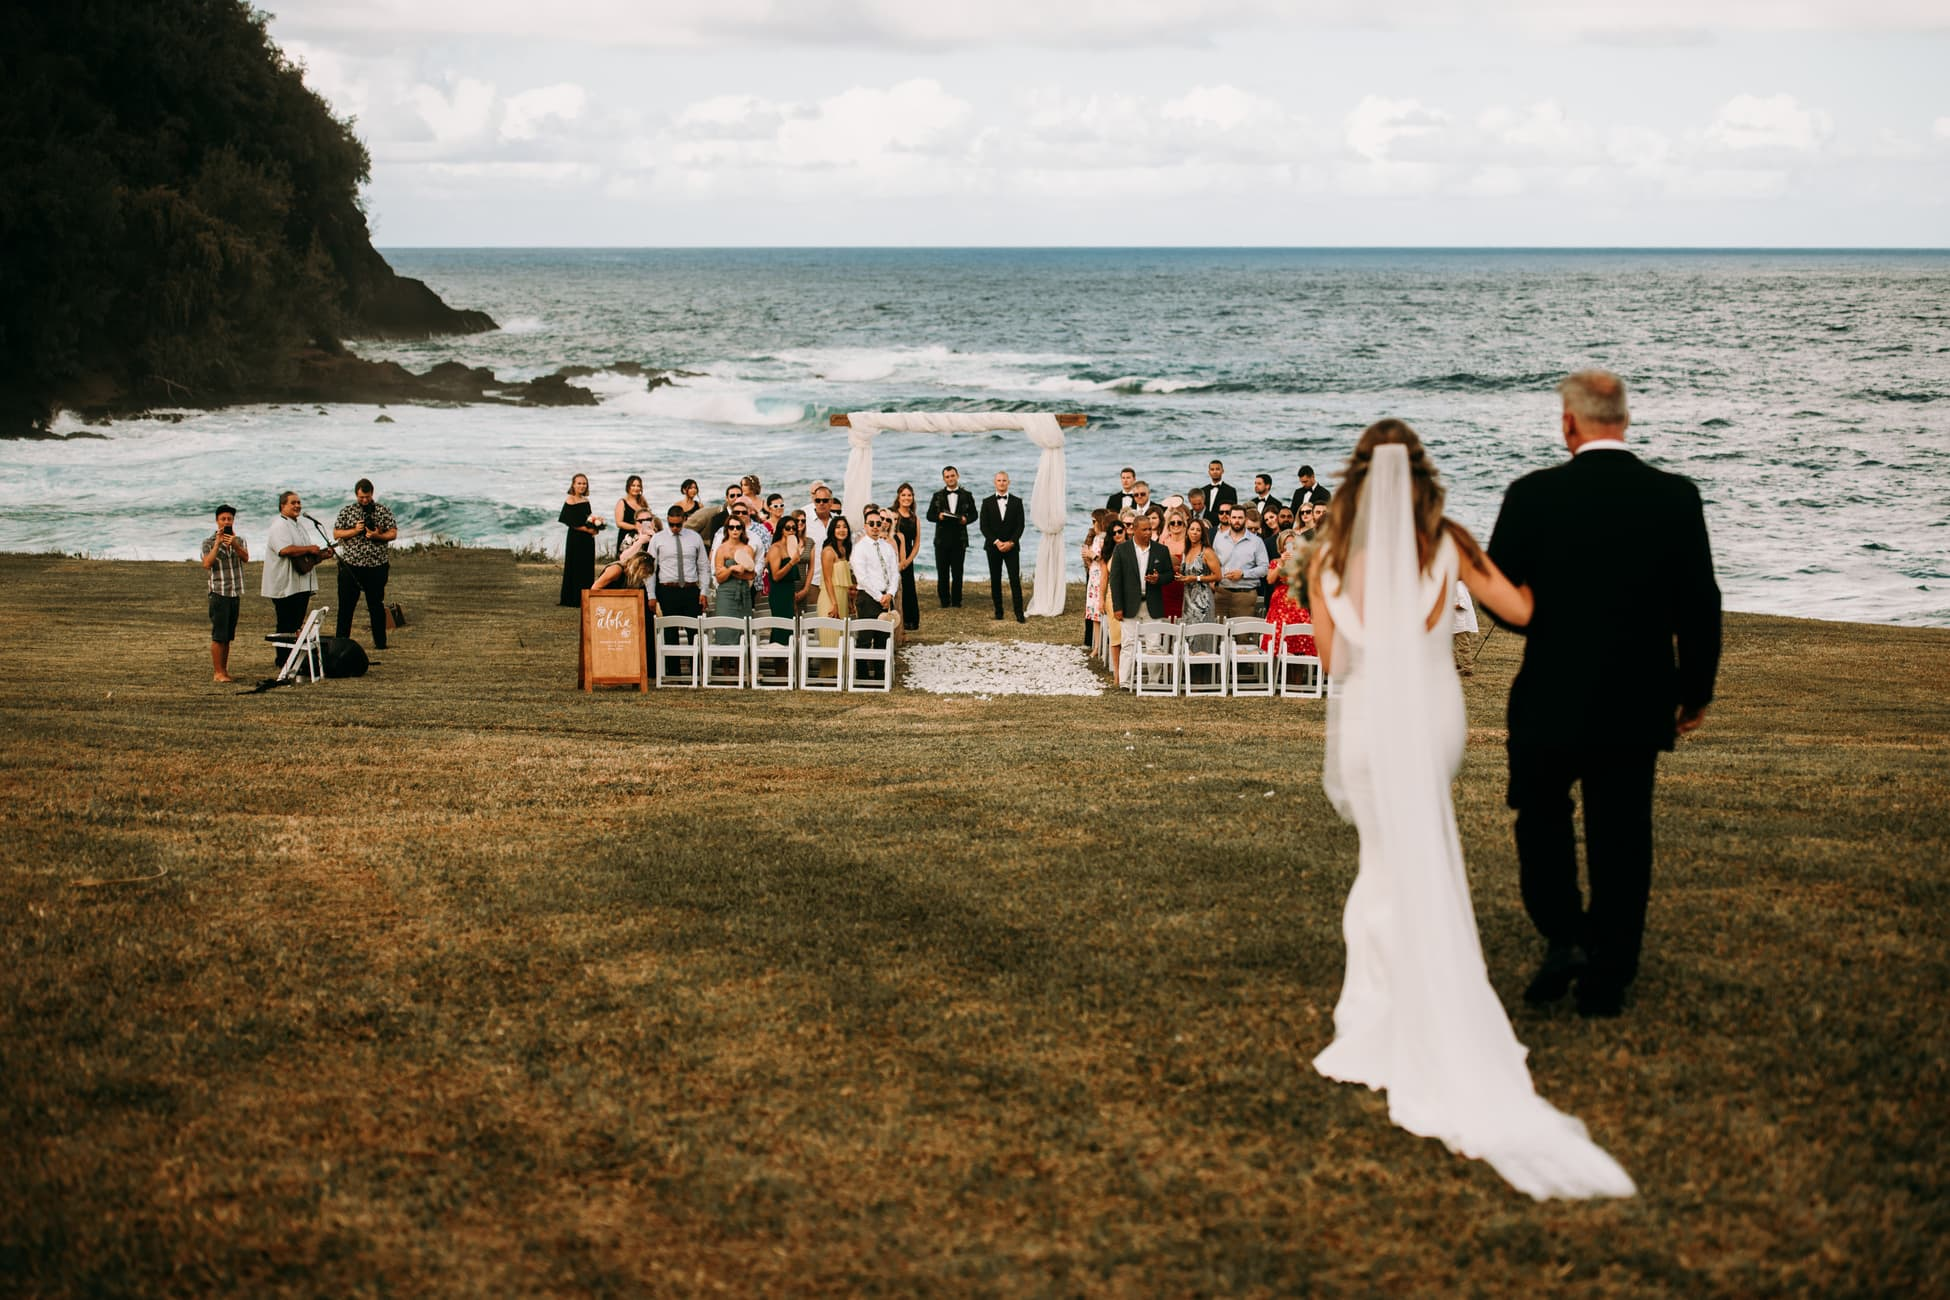 Oahu Wedding Photographer Rodrigo Moraes